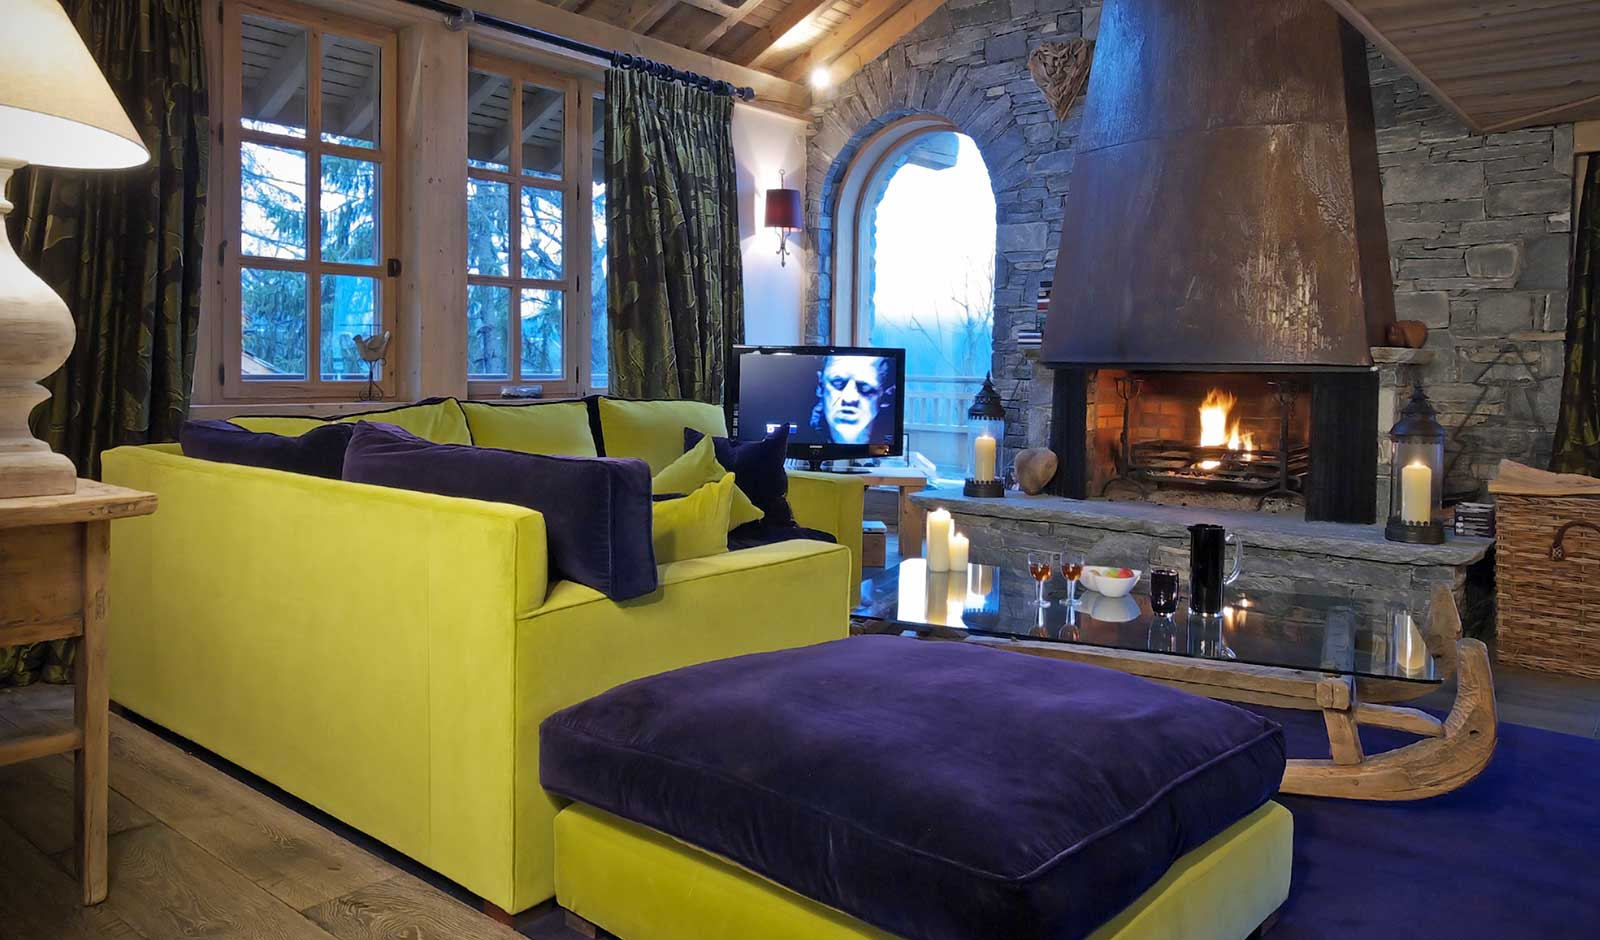 chalet-bonhomme-de-neige-1-atelier-crea-and-co-architecte-design-project-manager-meribel-savoie